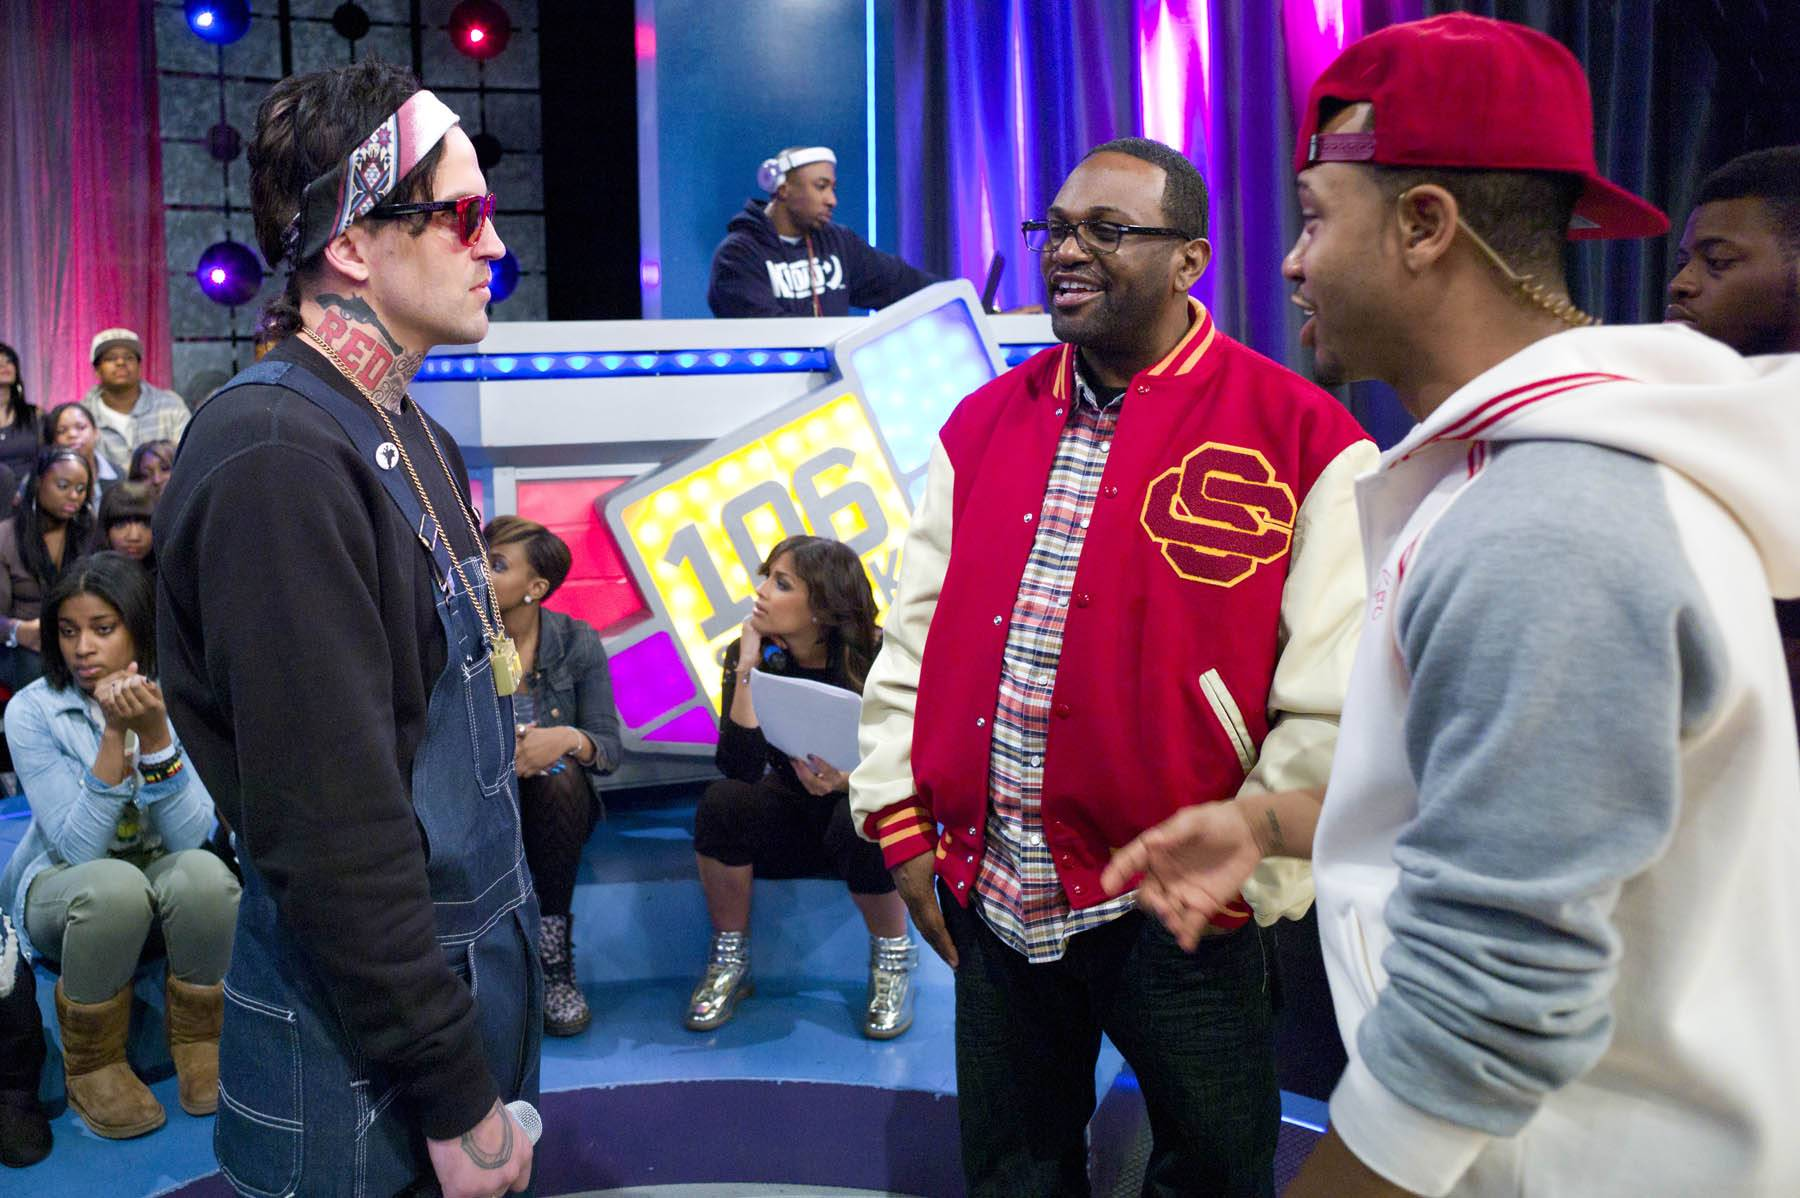 Cool Bro - Yelawolf and Terrence J are joined by Mike Cole of Universal Records during commercial break at 106 & Park, January 27, 2012. (Photo: John Ricard / BET)